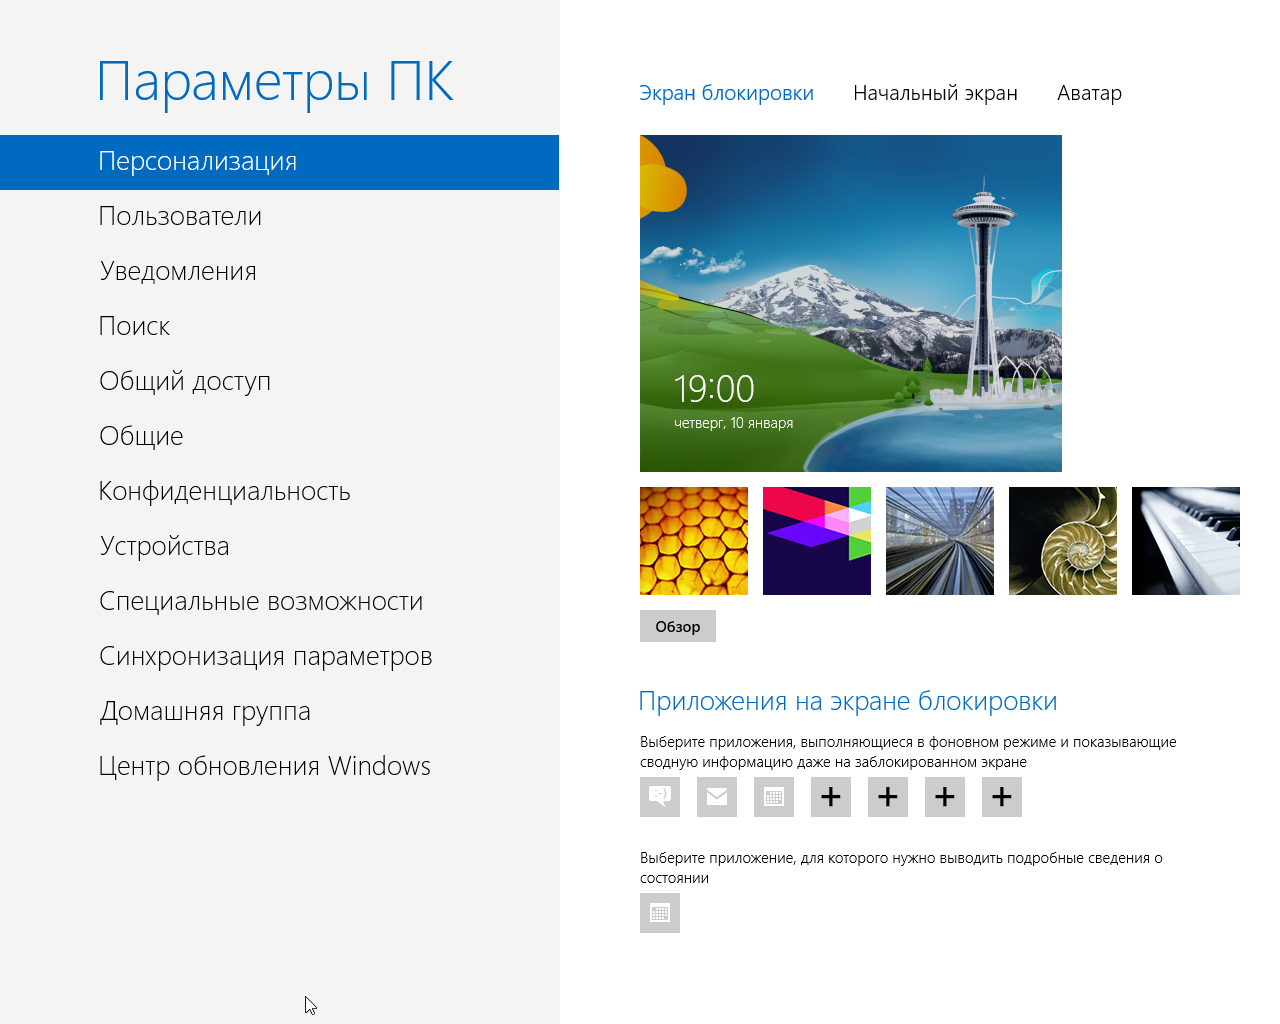 Windows 8 - параметры компьютера